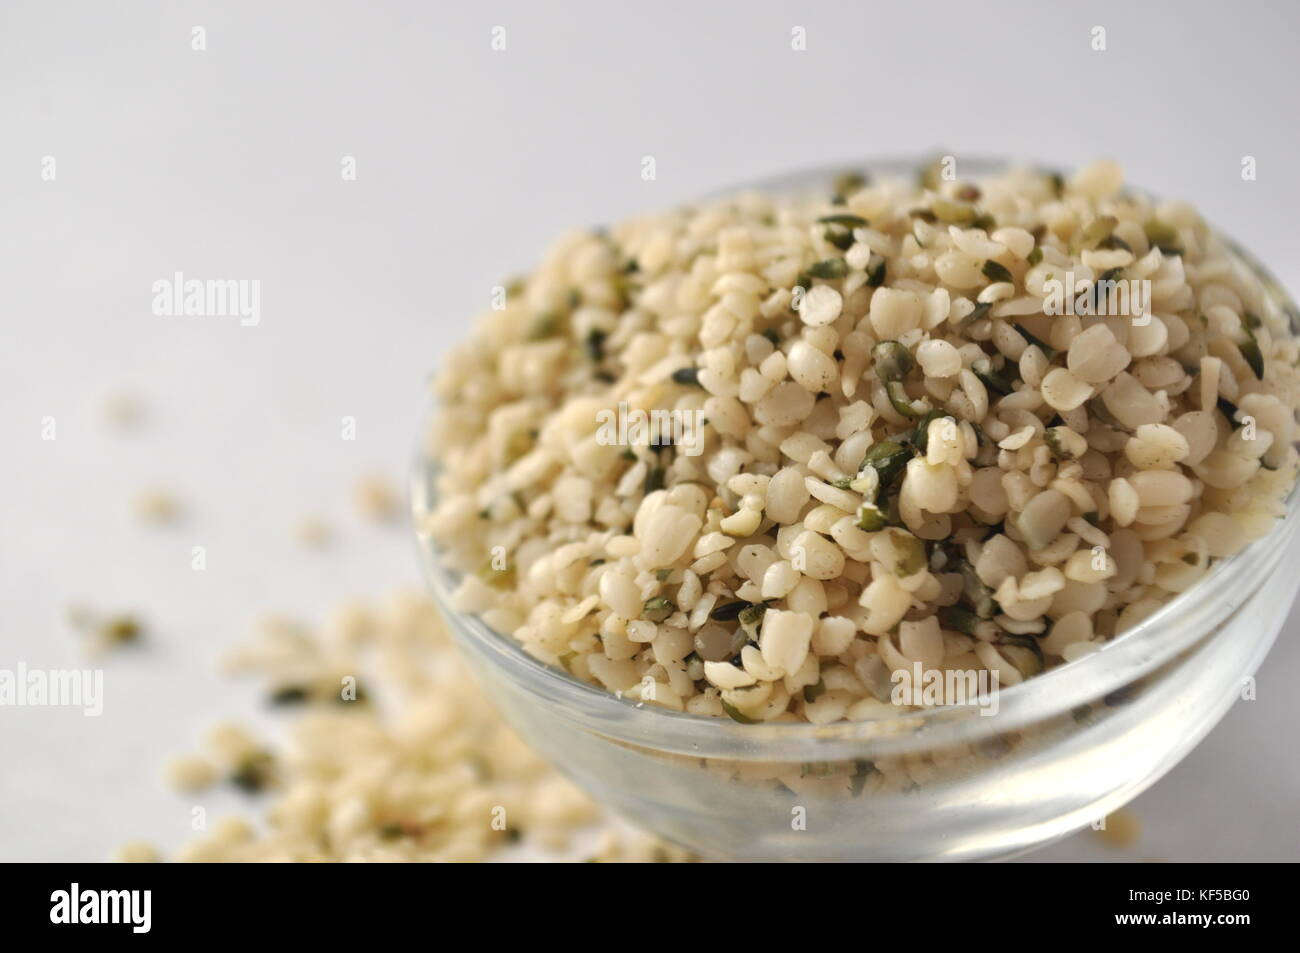 Hemp (Cannabis sativa) seeds or heart - natural and nutritious dietary supplement suitable for vegans, vegetarians, - Stock Image